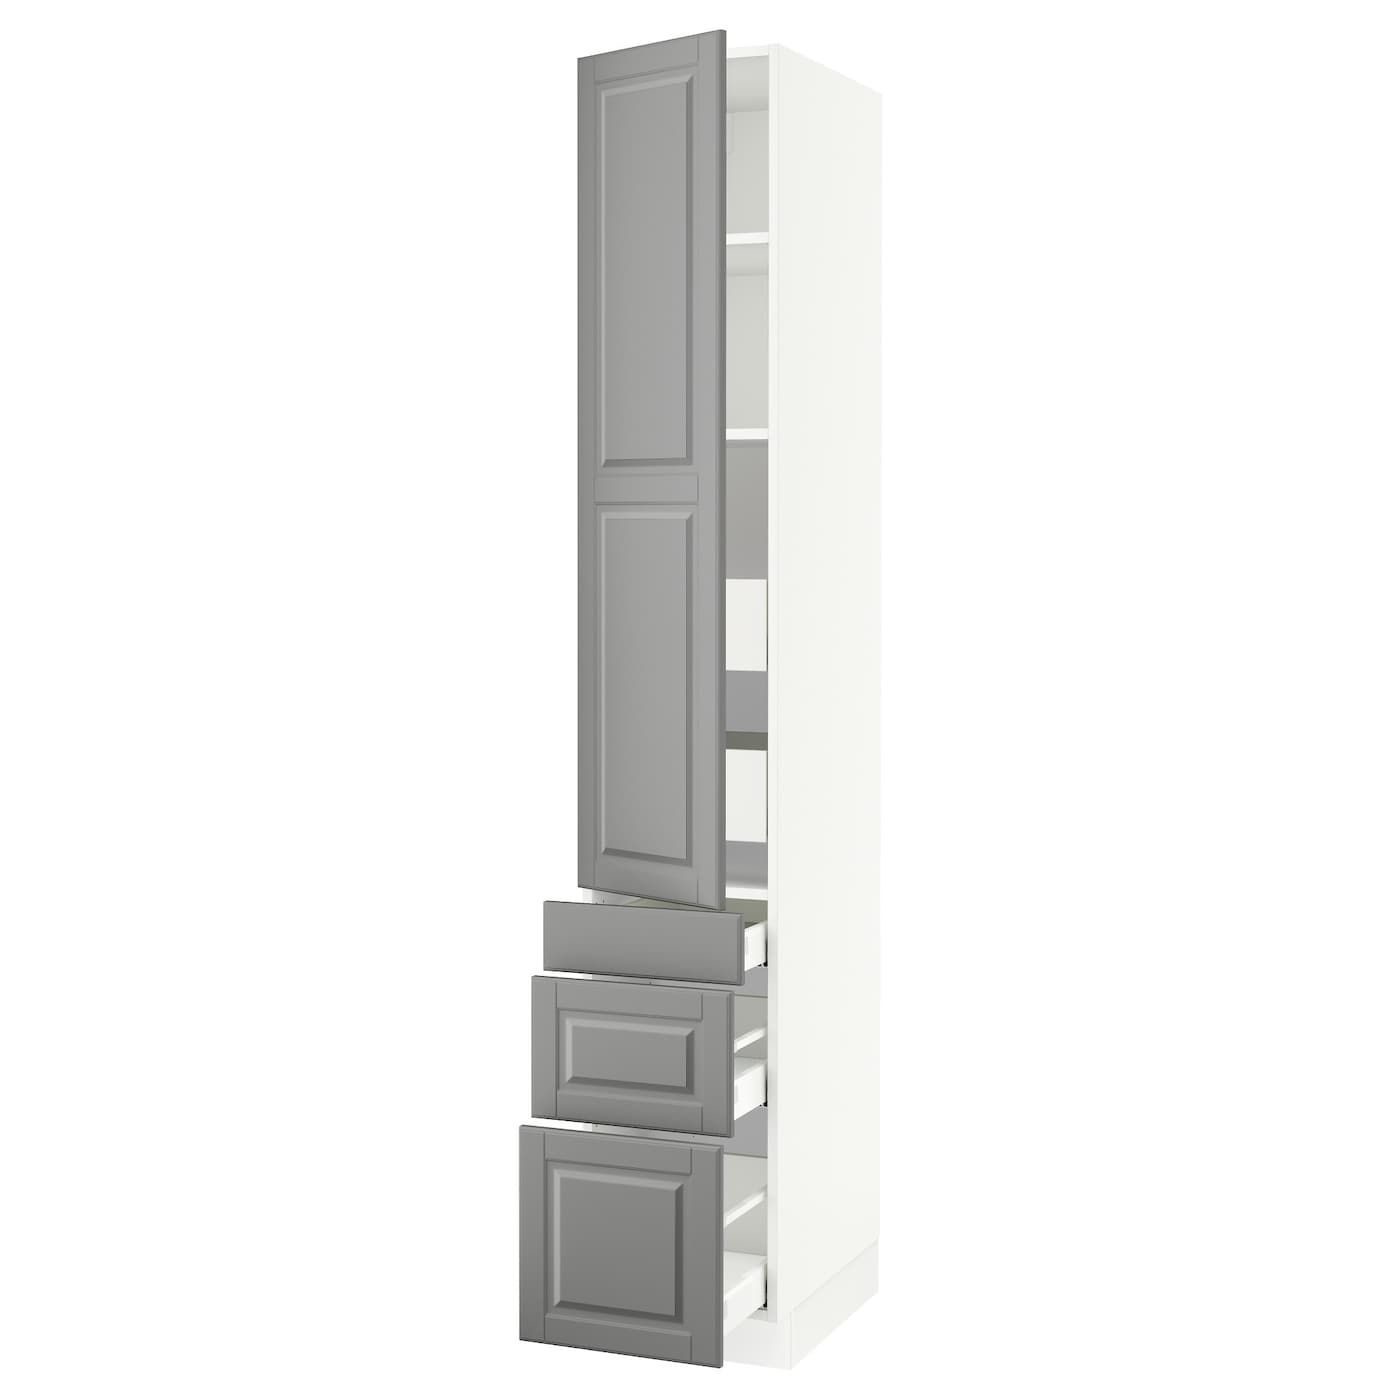 Ikea Sektion White High Cabinet W Door 5 Drawers Frame Colour